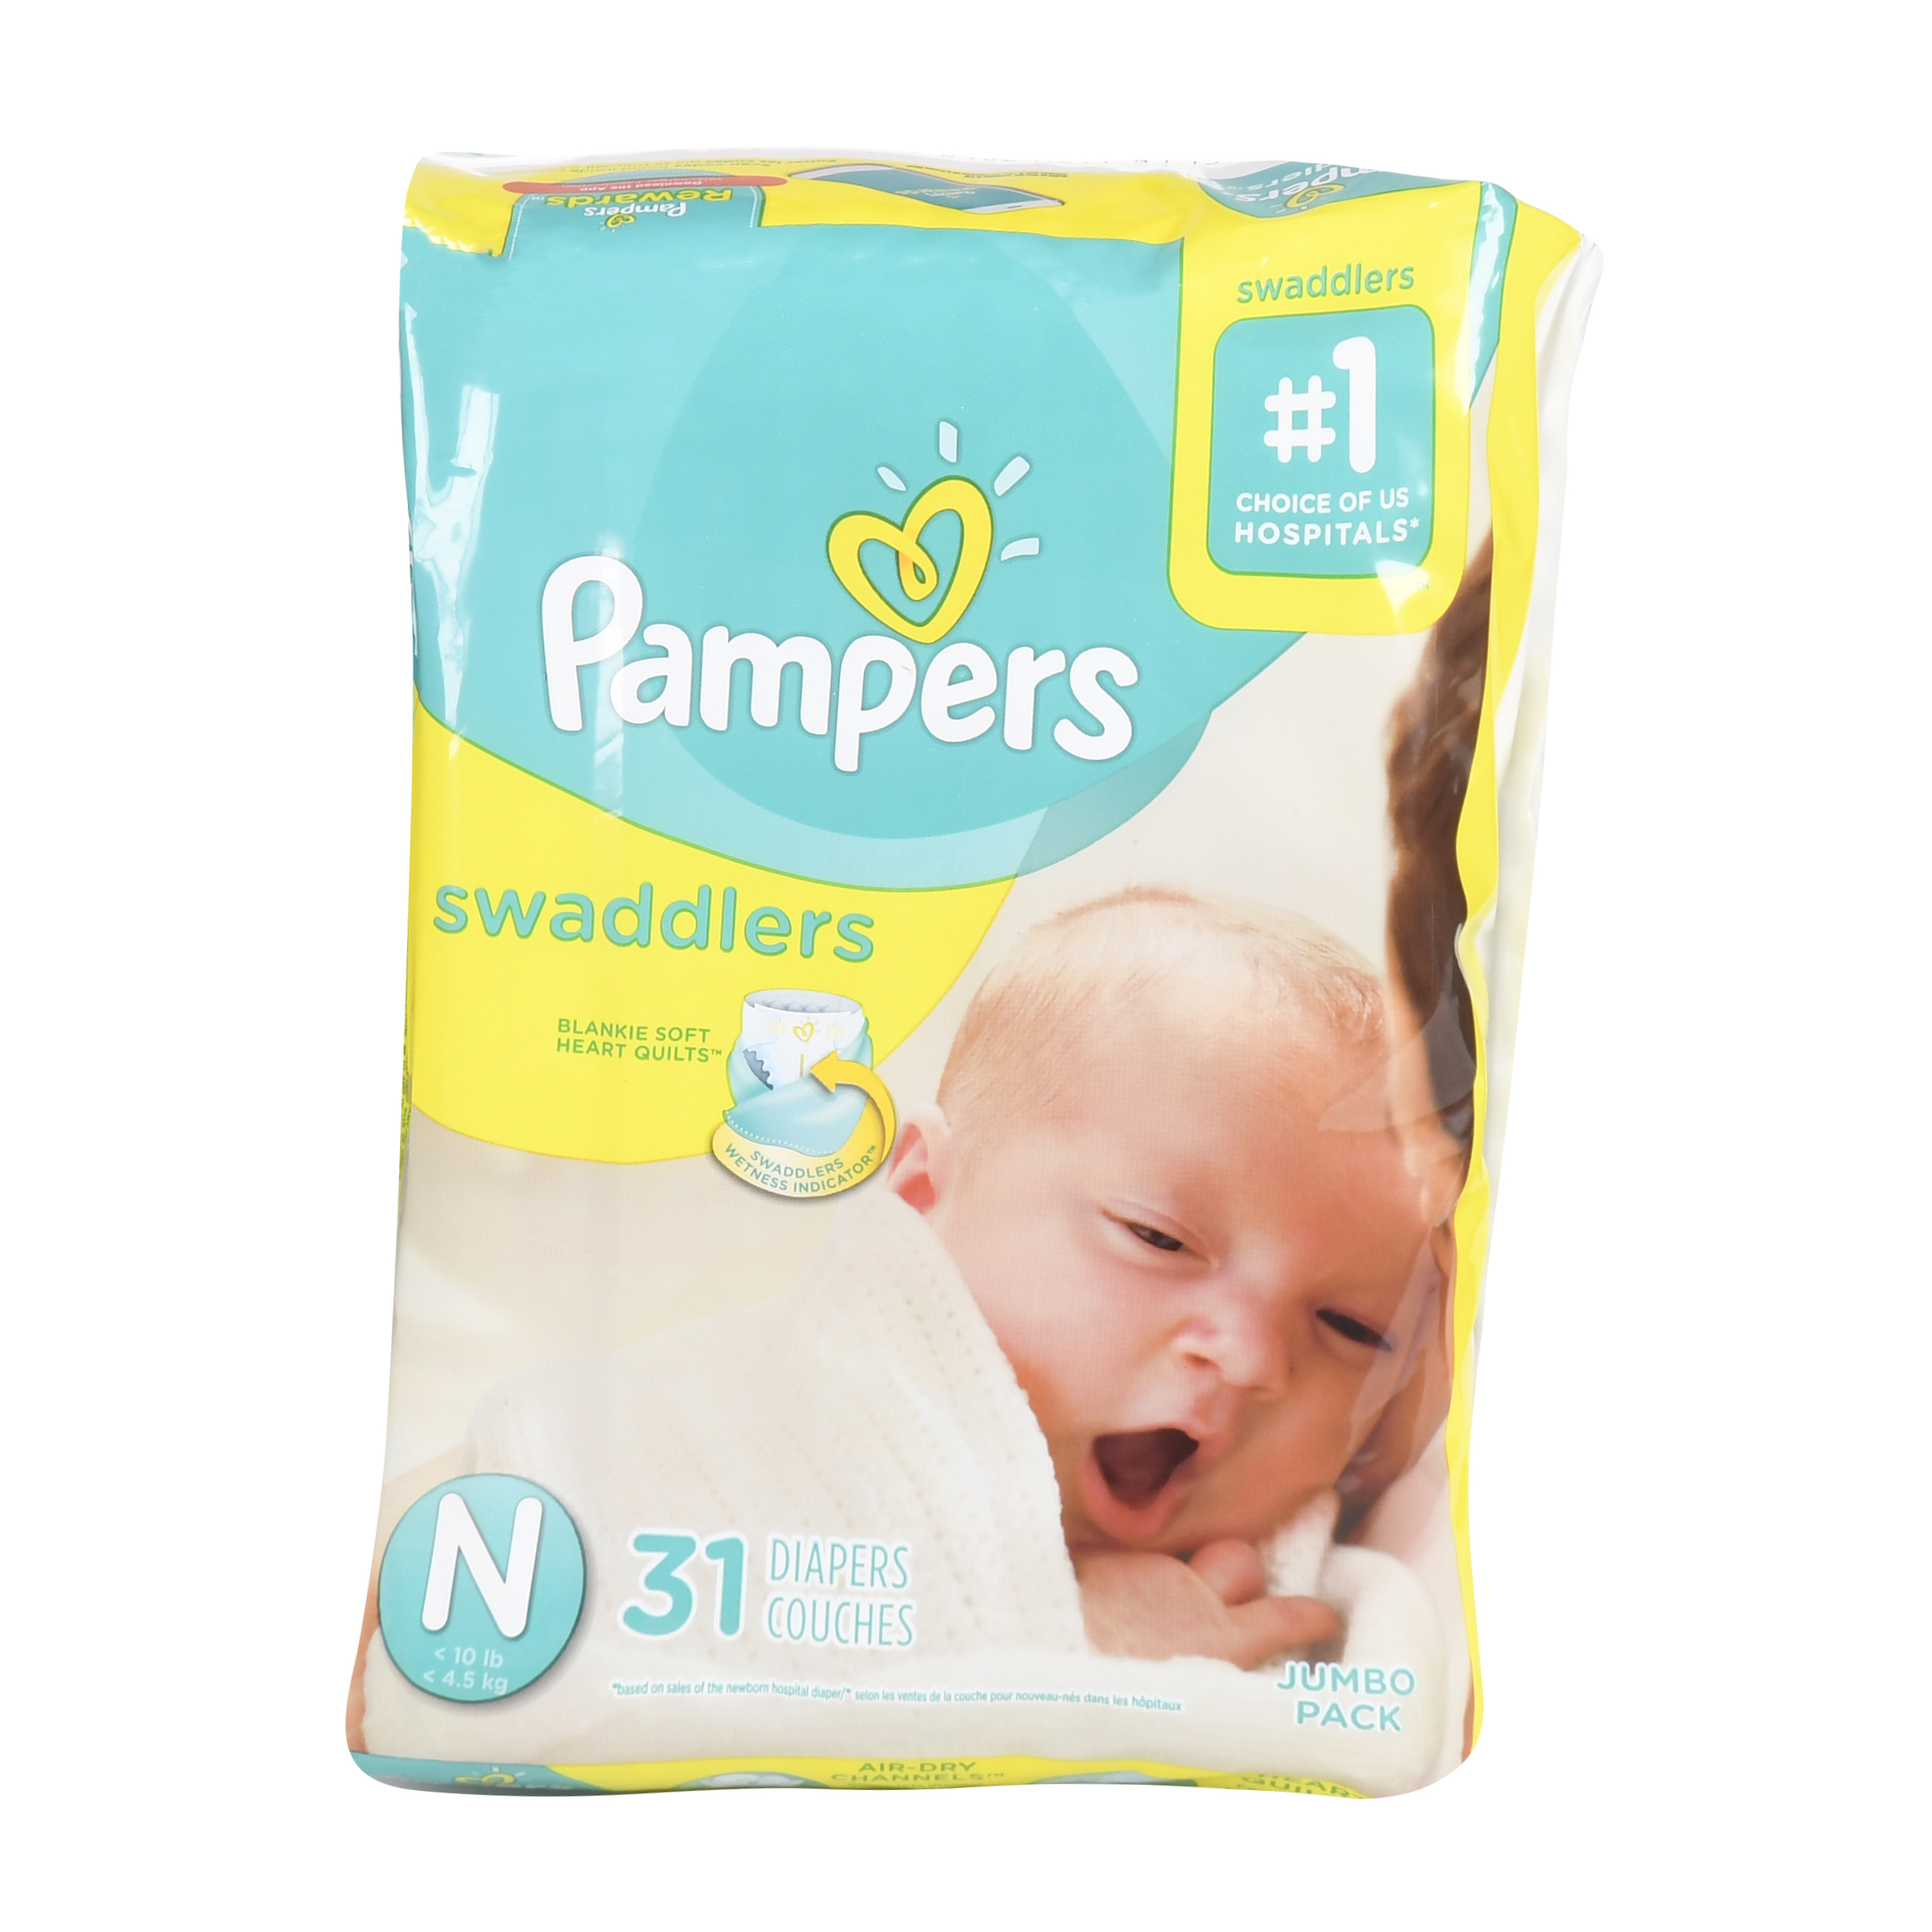 Pampers Swaddlers Size 0 Jumbo Pack 31ct